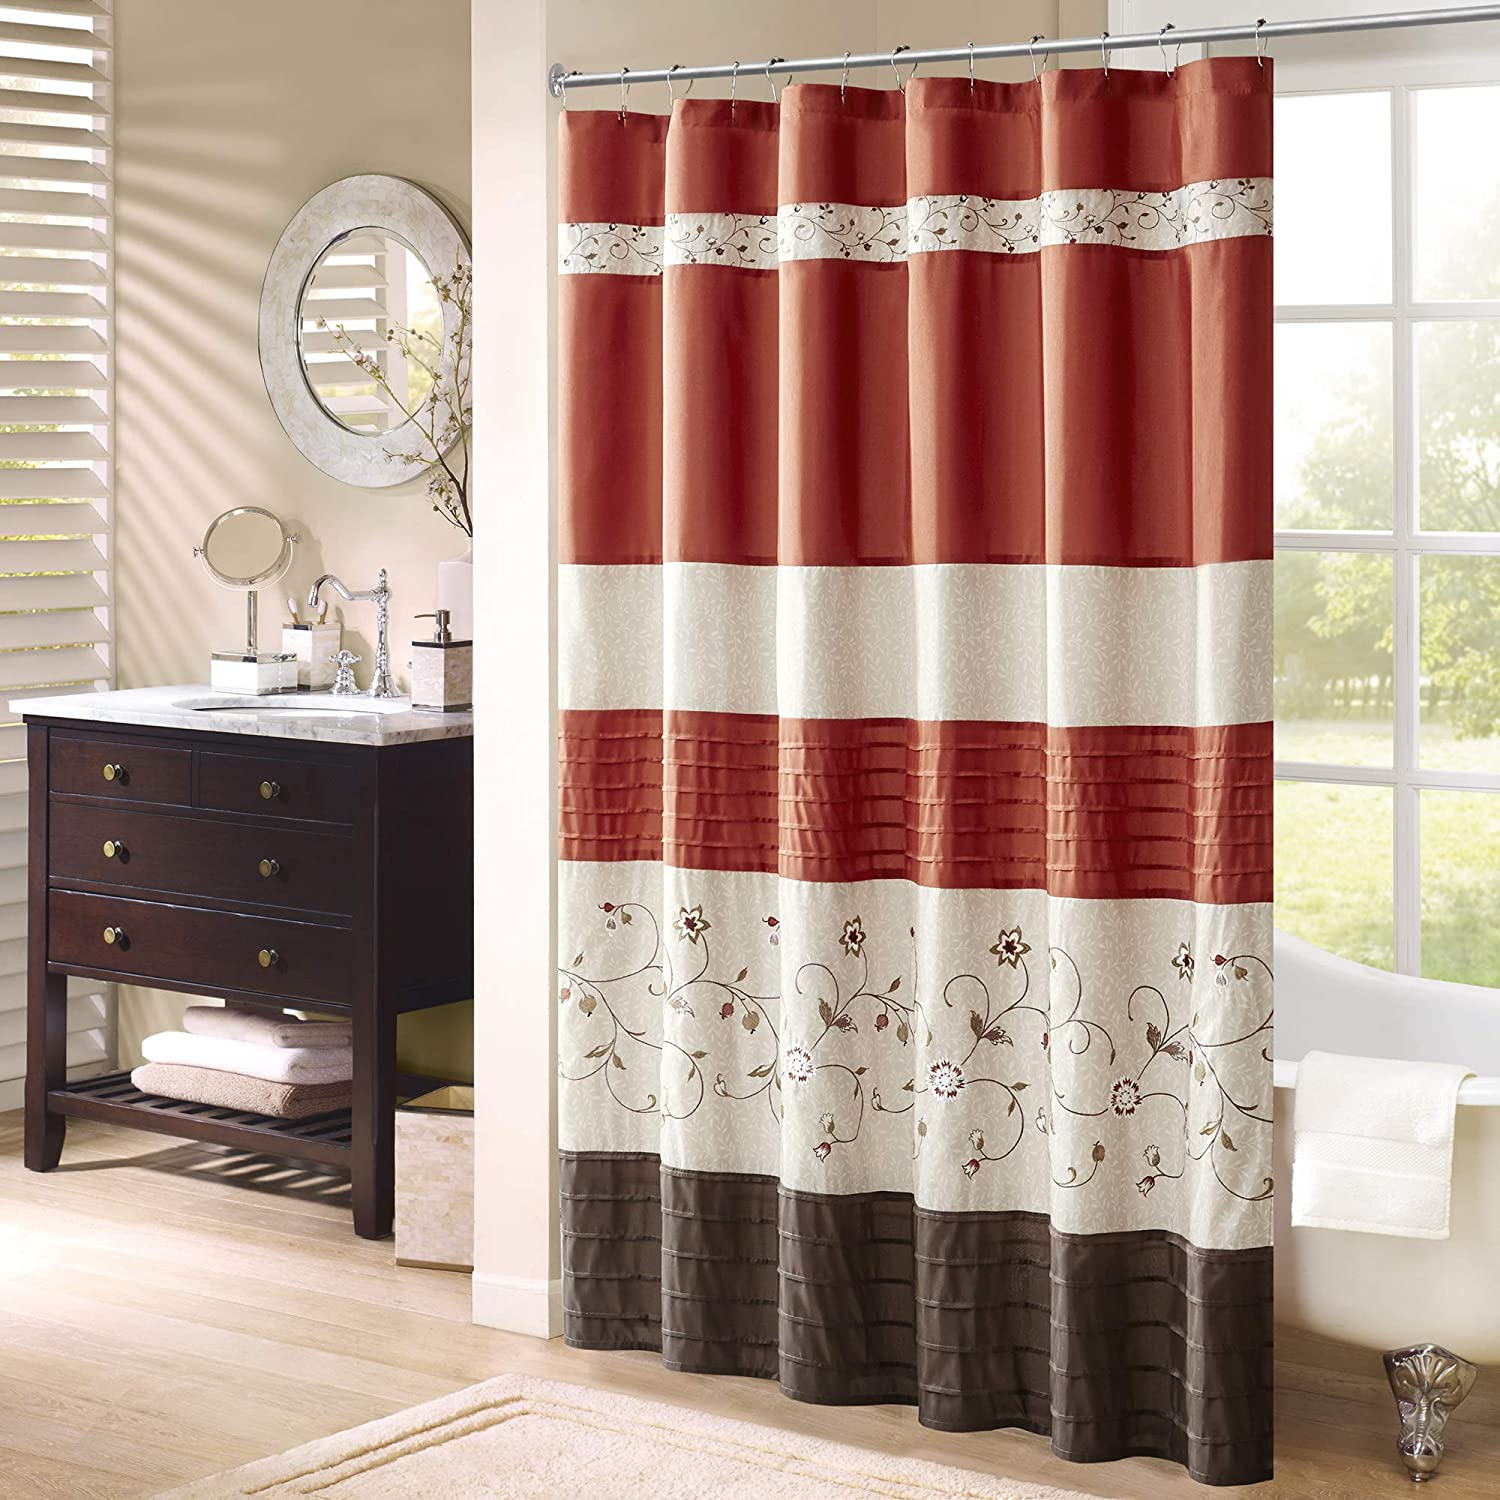 Max 88% OFF Madison Park sale Serene Shower Curtain Faux Floral Embroidered Silk